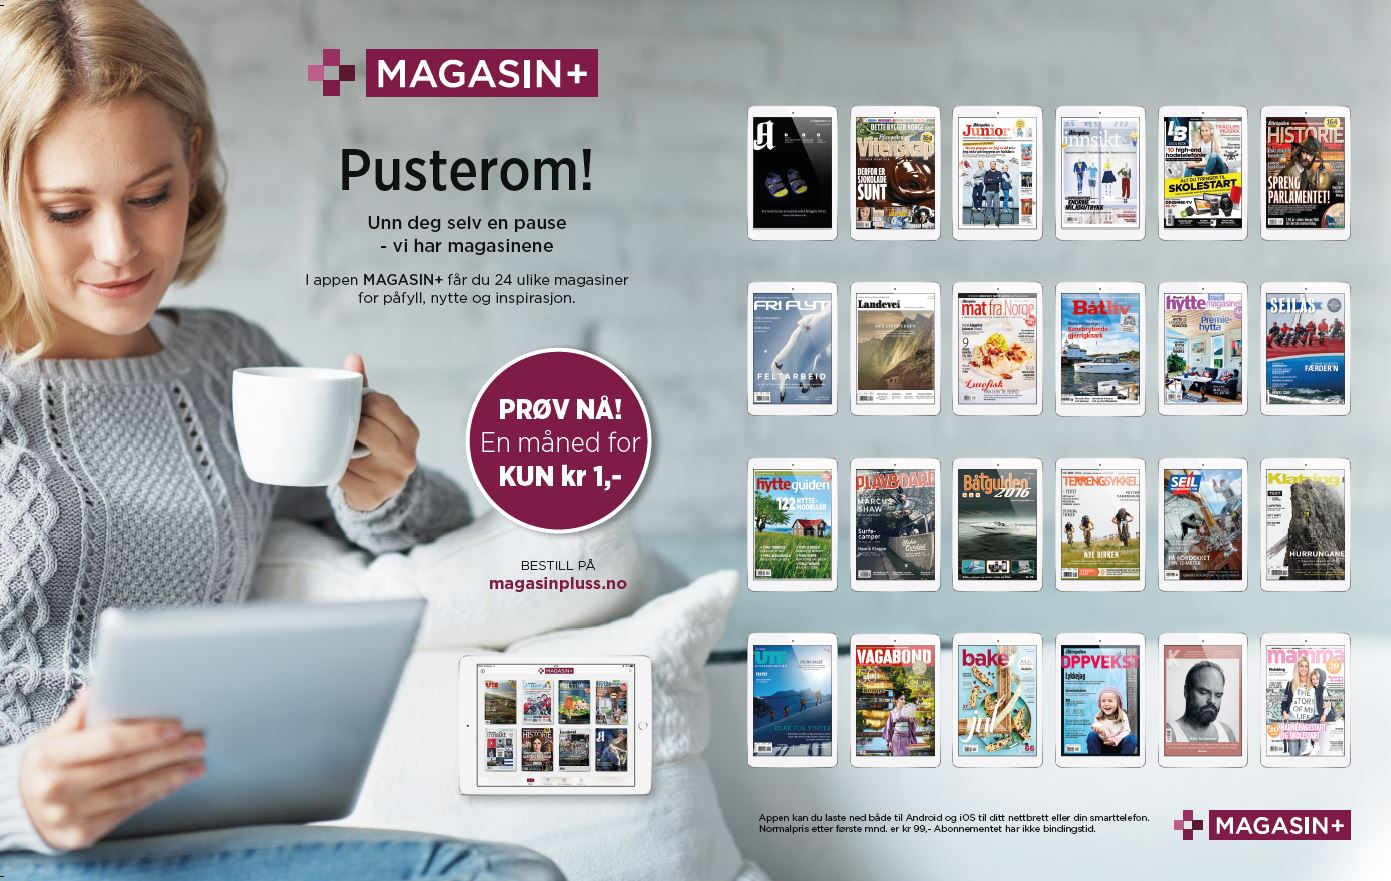 MAGASIN+,  2500 magazine issues in one app subscription.